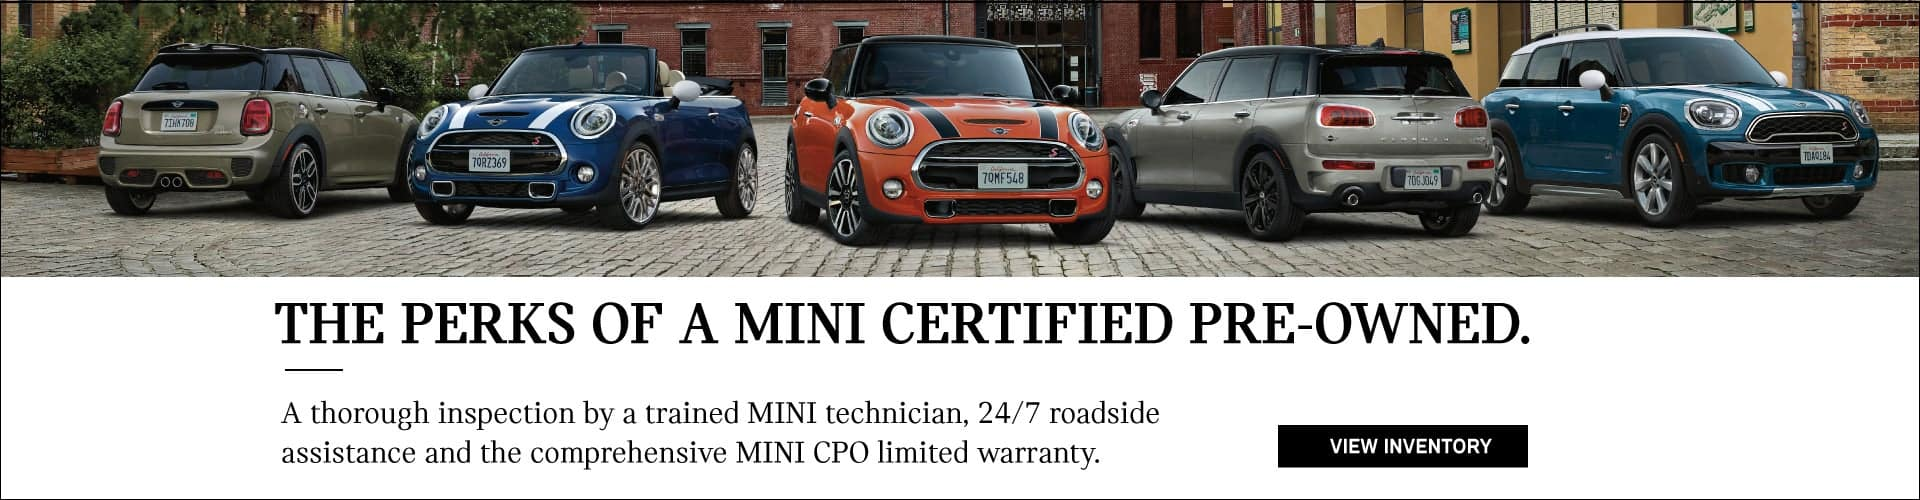 Perks of a MINI Certified Pre-Owned Vehicle